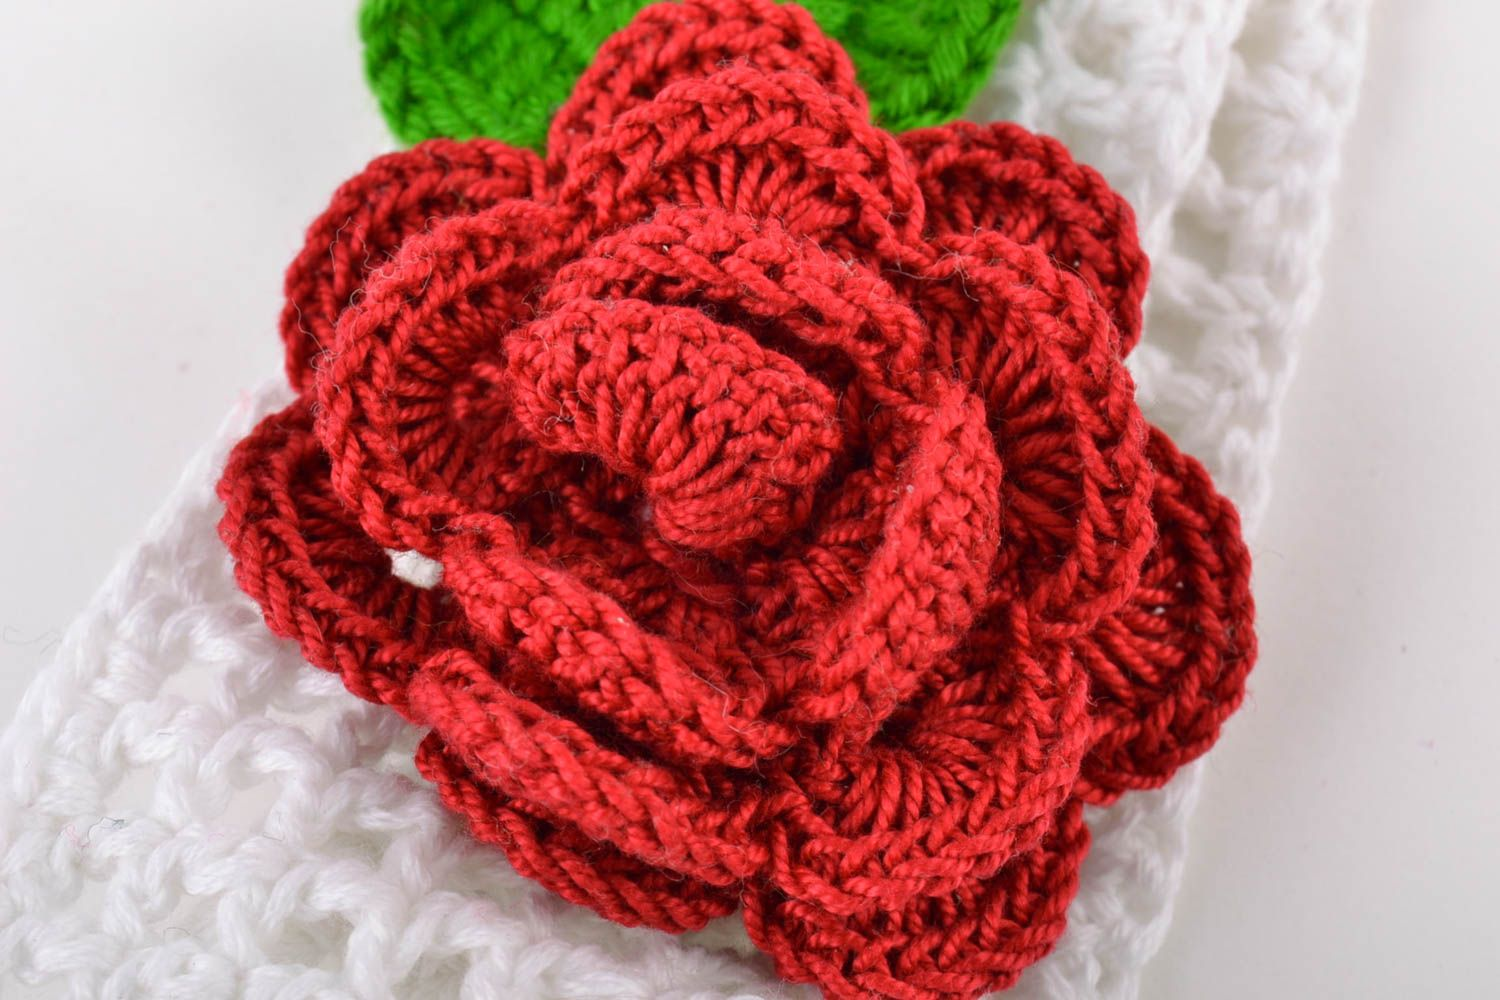 Handmade wide lacy crochet white headband with volume red flower for baby girl photo 3